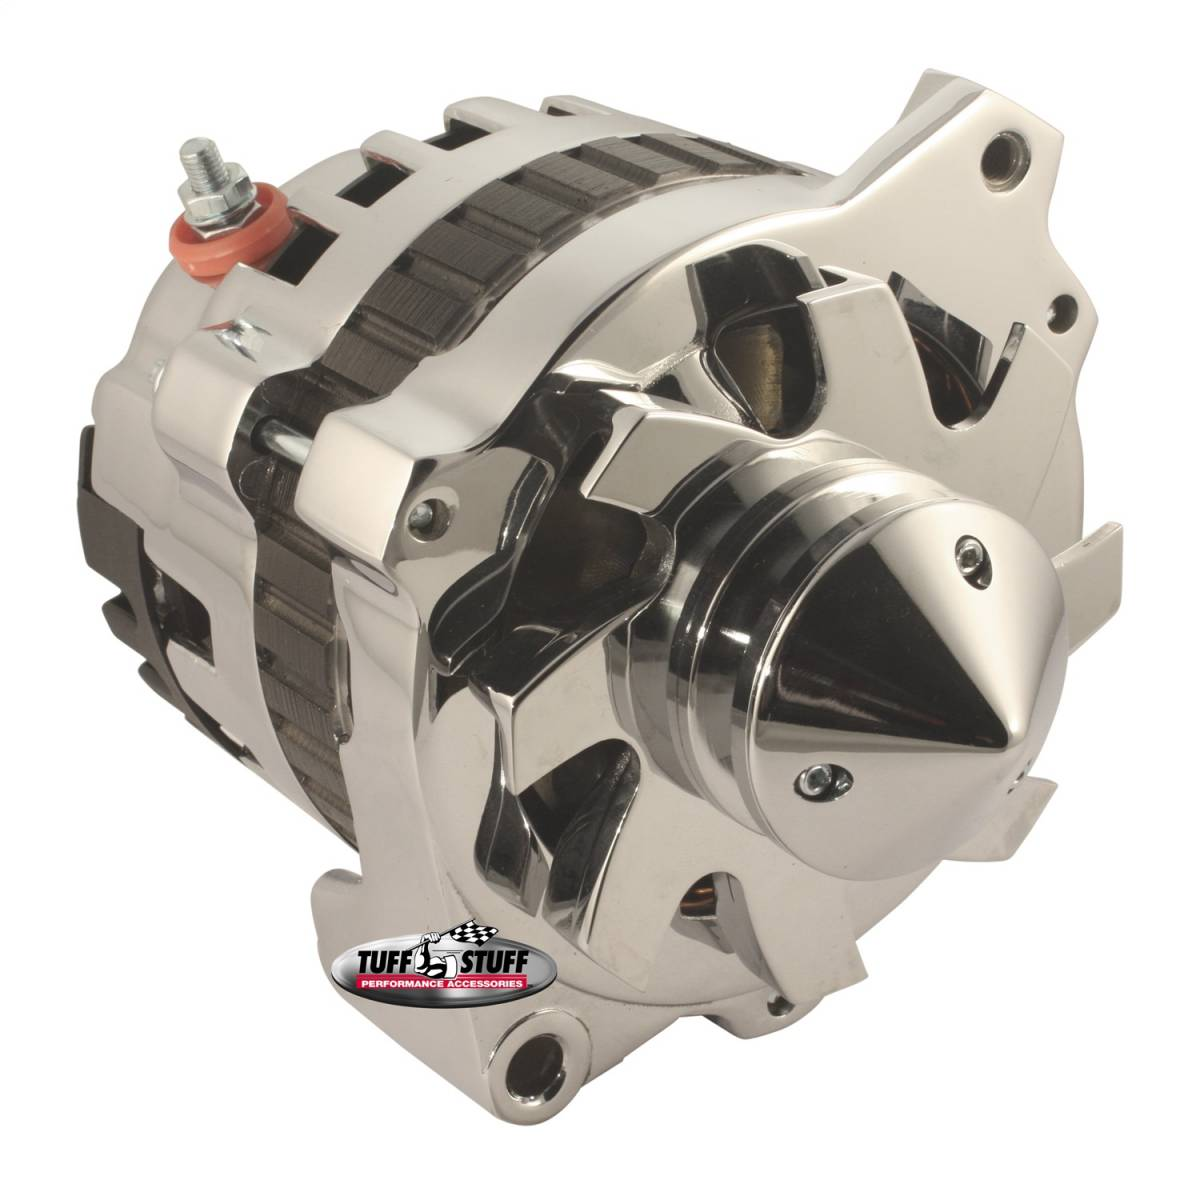 Tuff Stuff Performance - Silver Bullet Alternator 160 AMP 1 Wire Or OEM Hookup V Groove Pulley Internal And External Cooling Fans 6.125 in. Bolt To Bolt Polished 7866BBULL